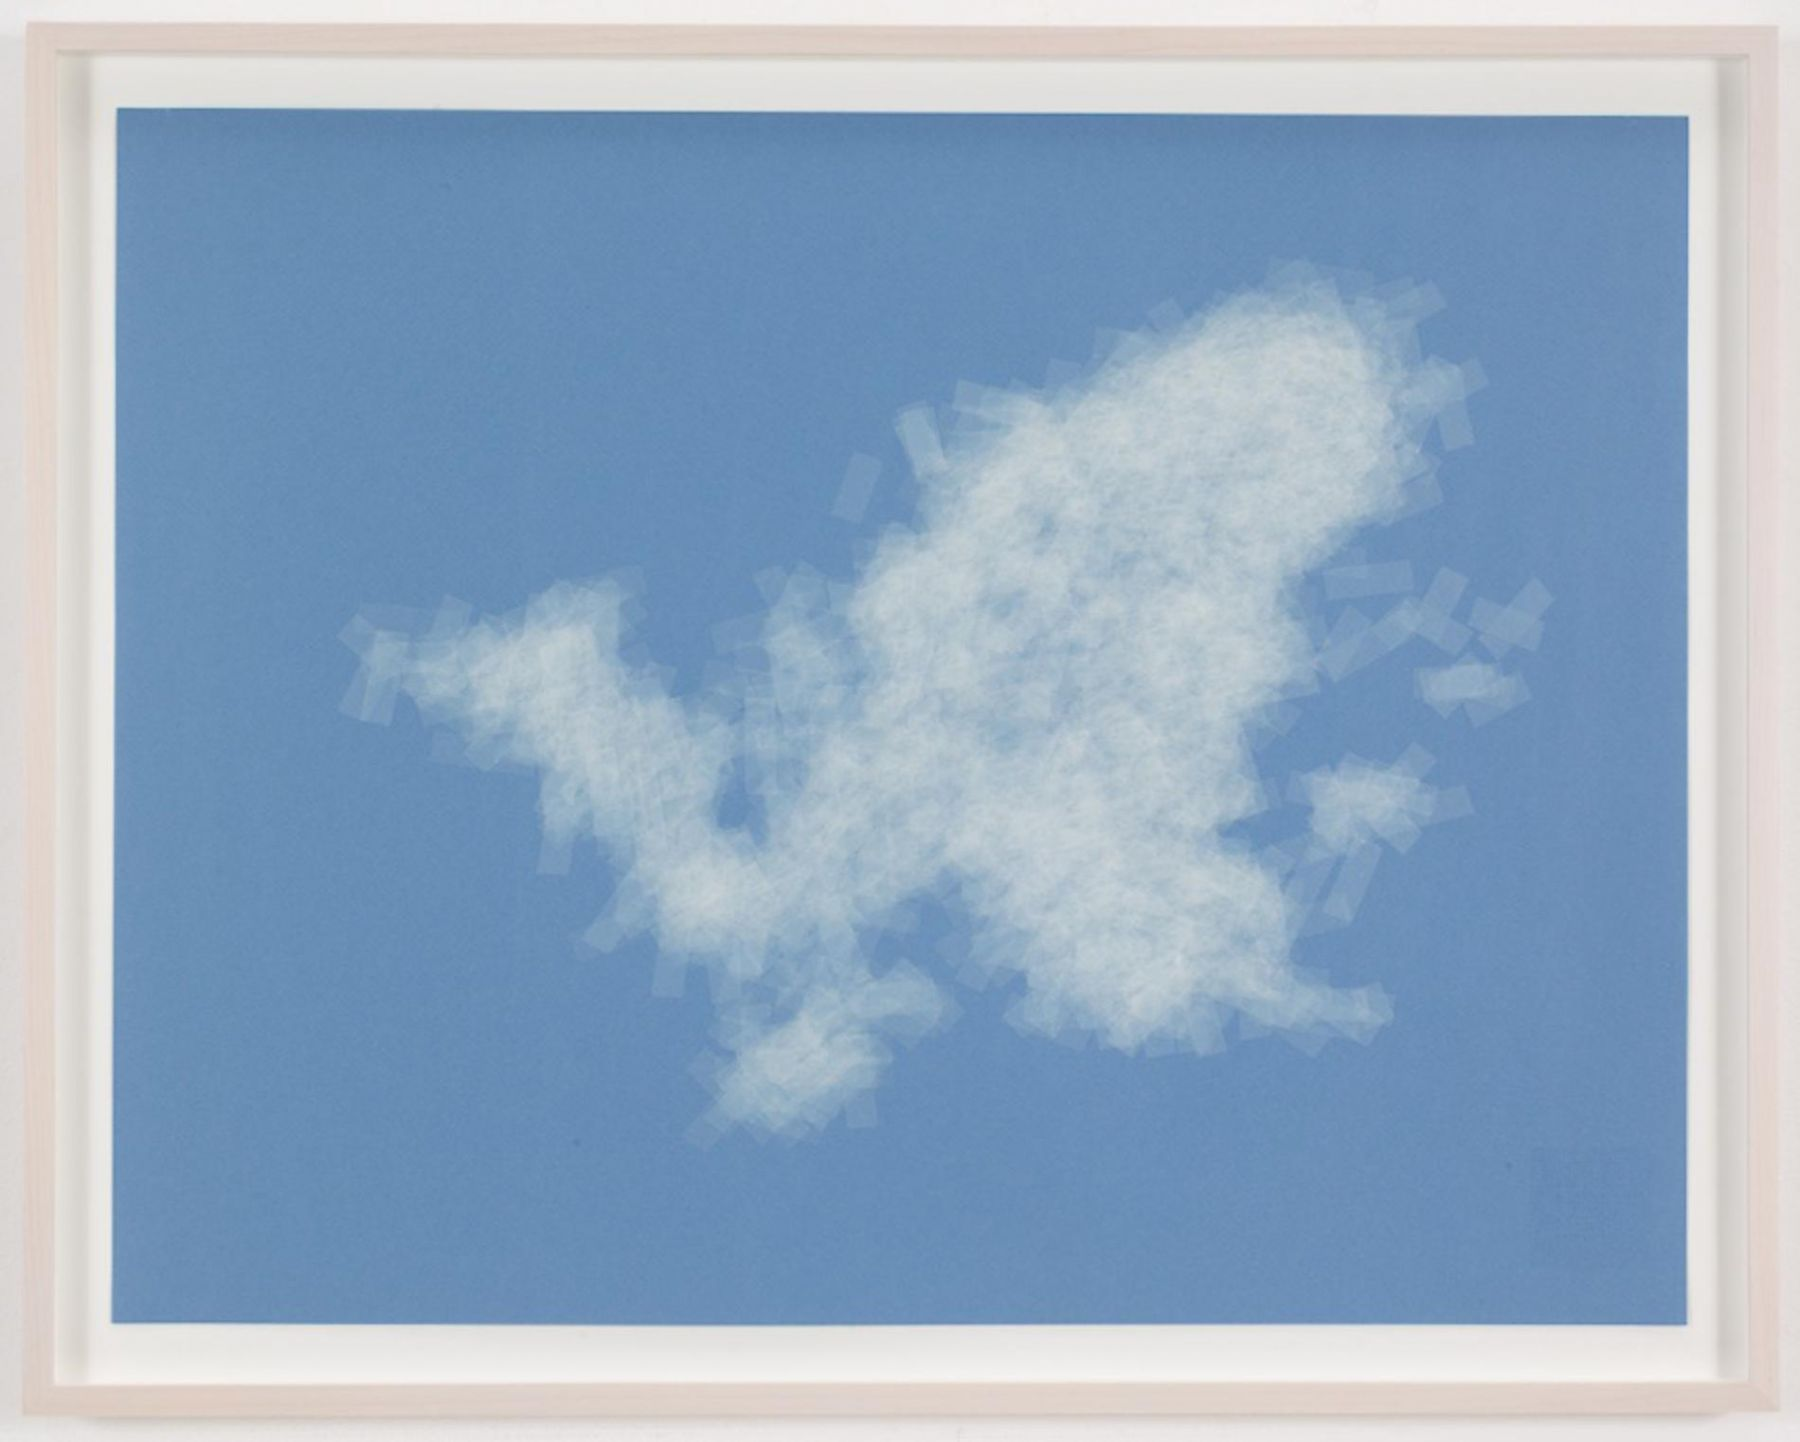 , SPENCER FINCH, Cloud (cumulus congestus, Vermont), 2014, Scotch tape on paper, 19 3/4 x 25 1/2 in. (sheet) 21 5/8 x 27 1/2 in. (framed)